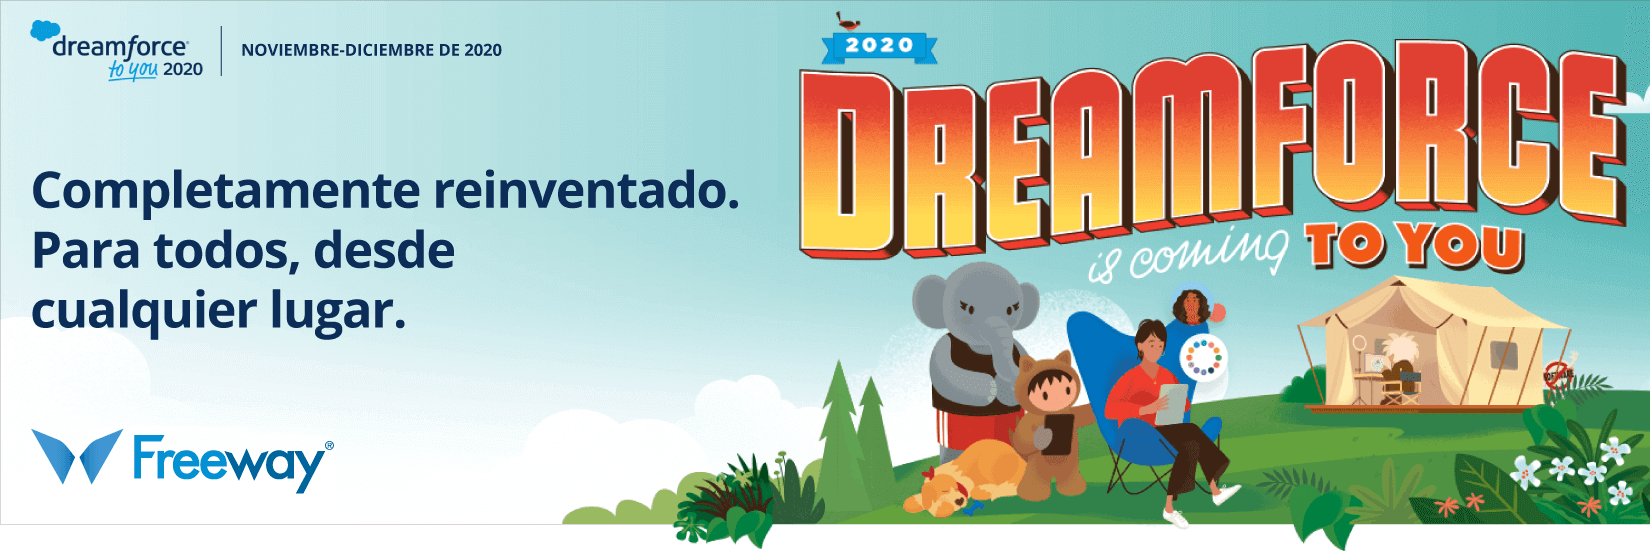 Freeway te invita a Dreamforce 2020